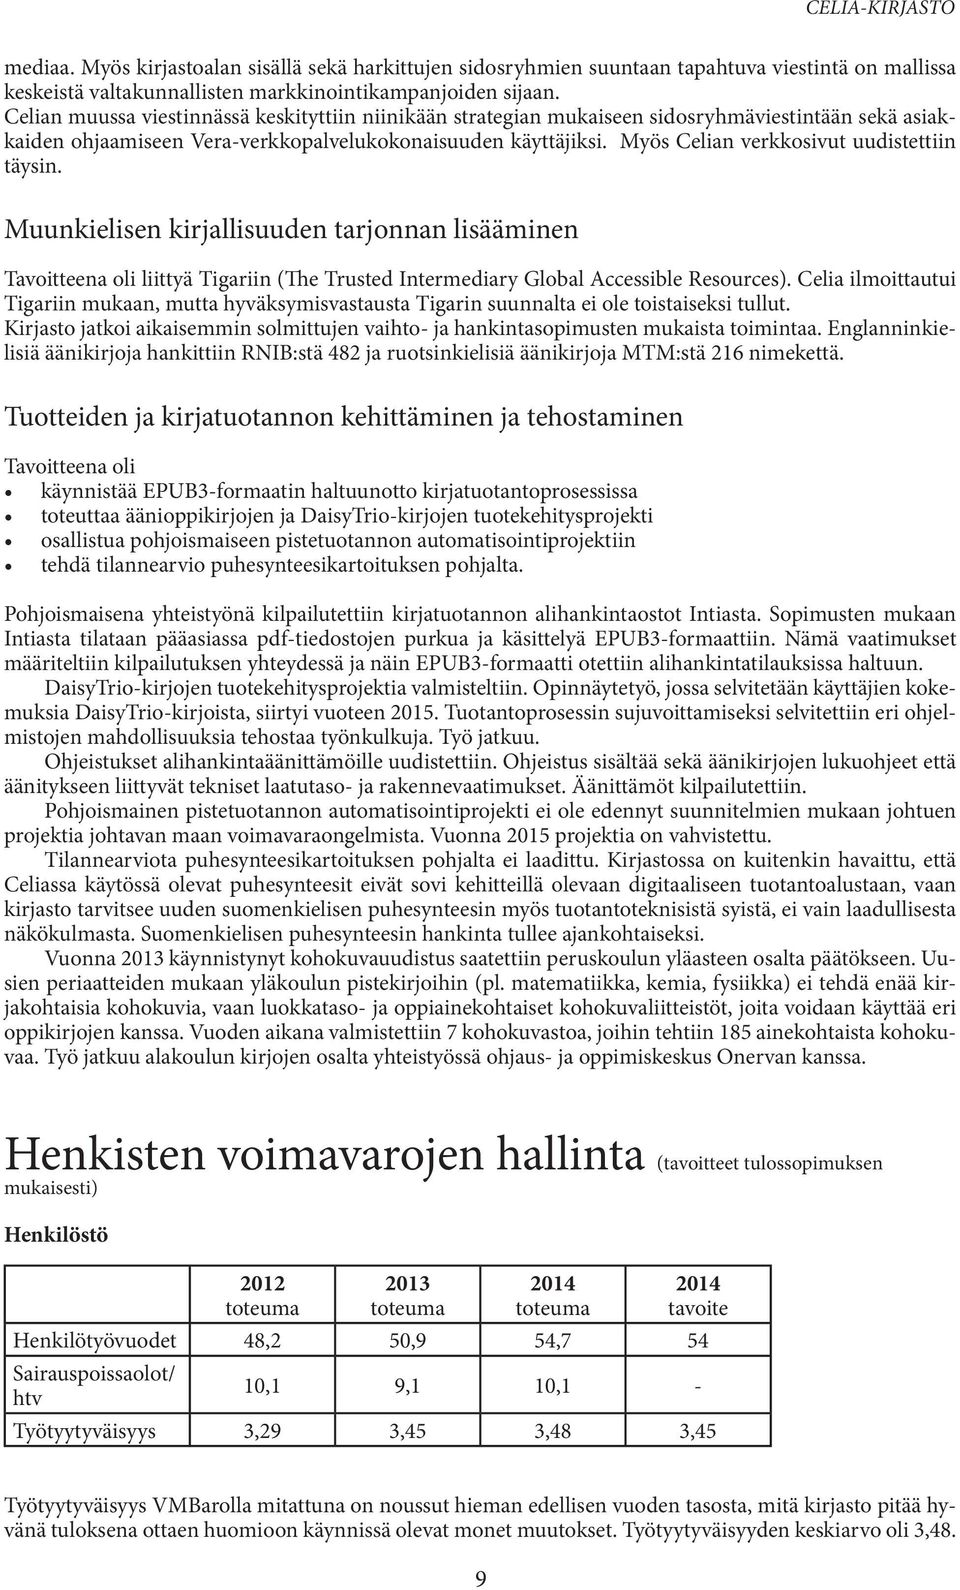 Myös Celian verkkosivut uudistettiin täysin. Muunkielisen kirjallisuuden tarjonnan lisääminen Tavoitteena oli liittyä Tigariin (The Trusted Intermediary Global Accessible Resources).